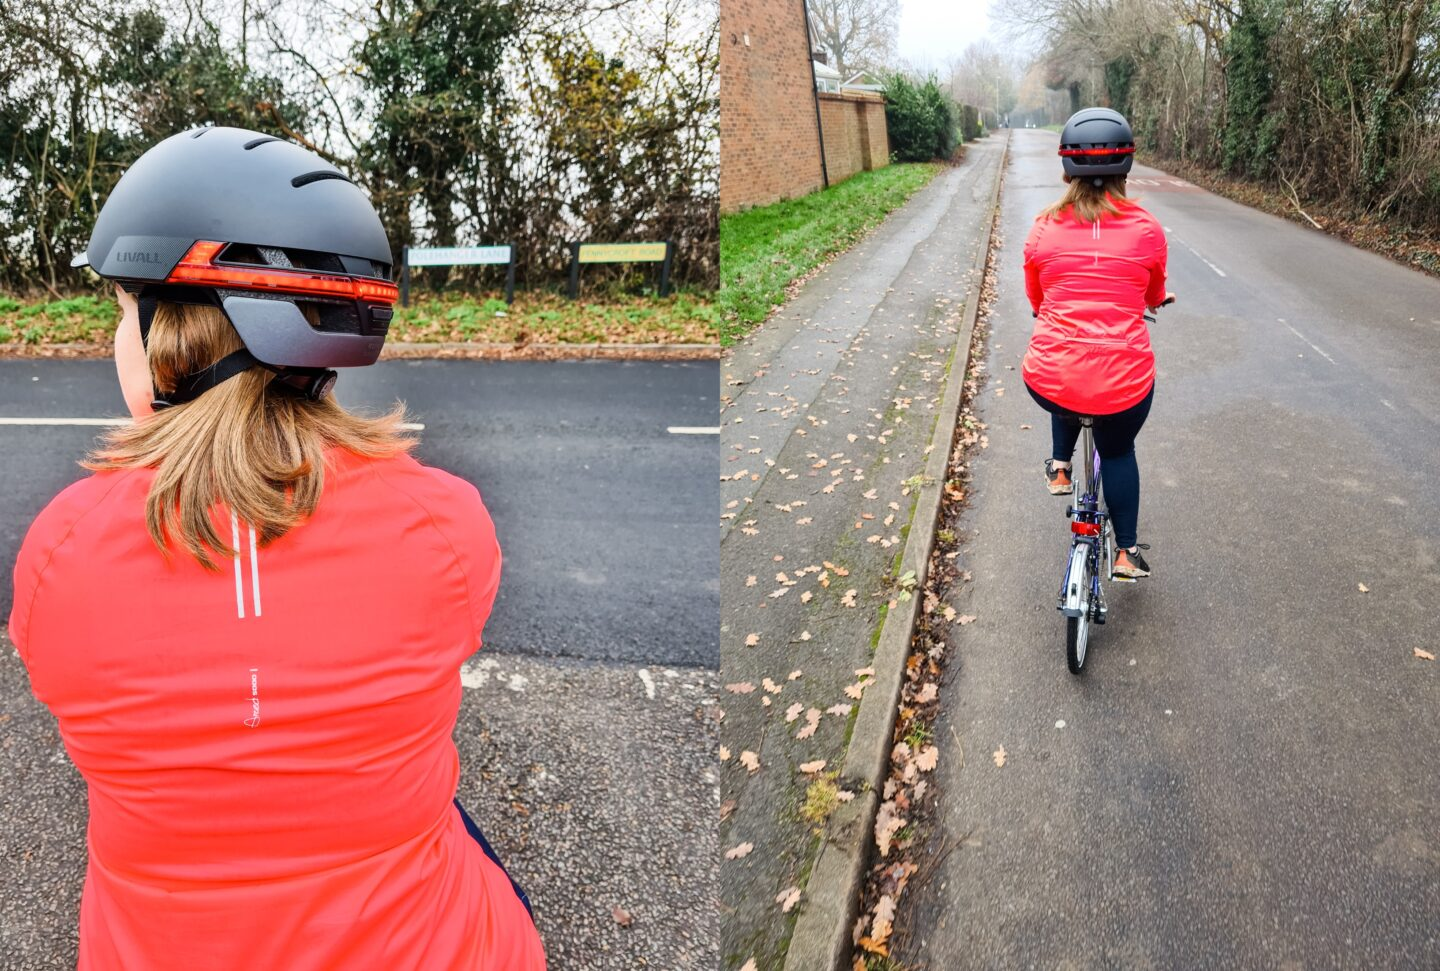 Collage of two images - left shows a woman in pink cycling jacket and helmet at a junction, right shows a woman in pink cycling jacket and helmet riding away down the road